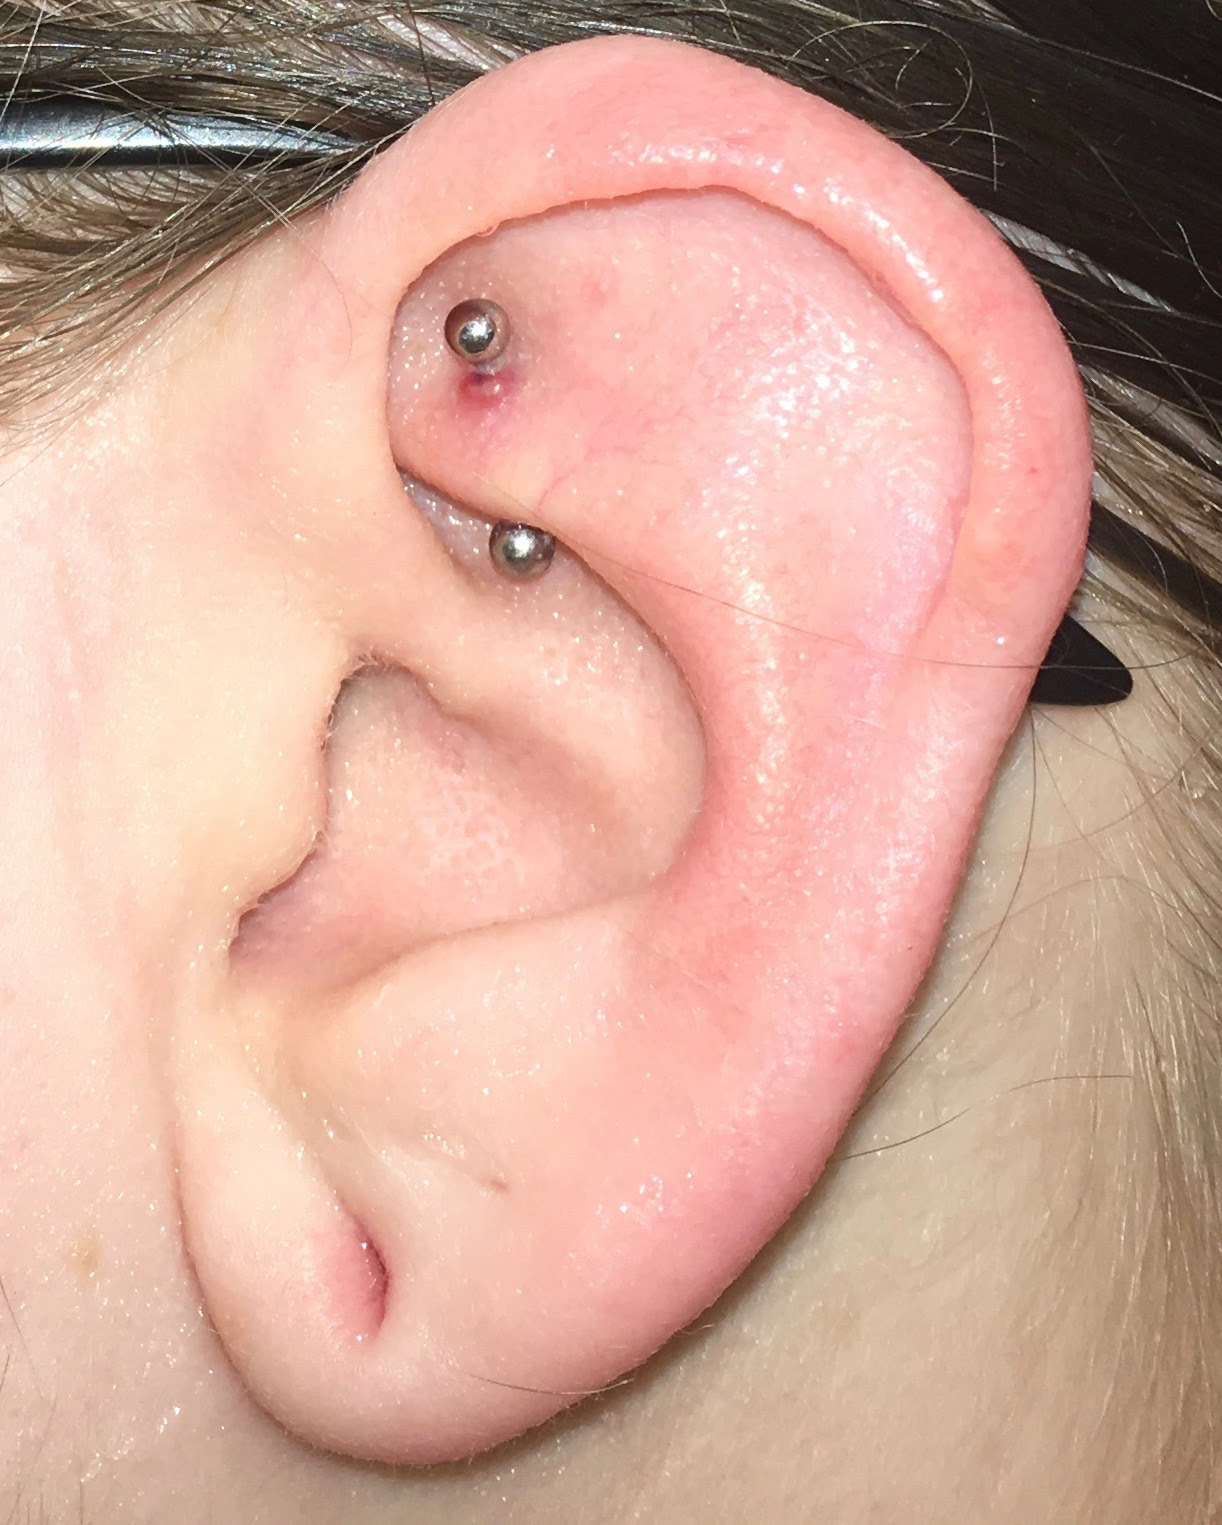 Irritation Bump On Month Old Rook Piercing